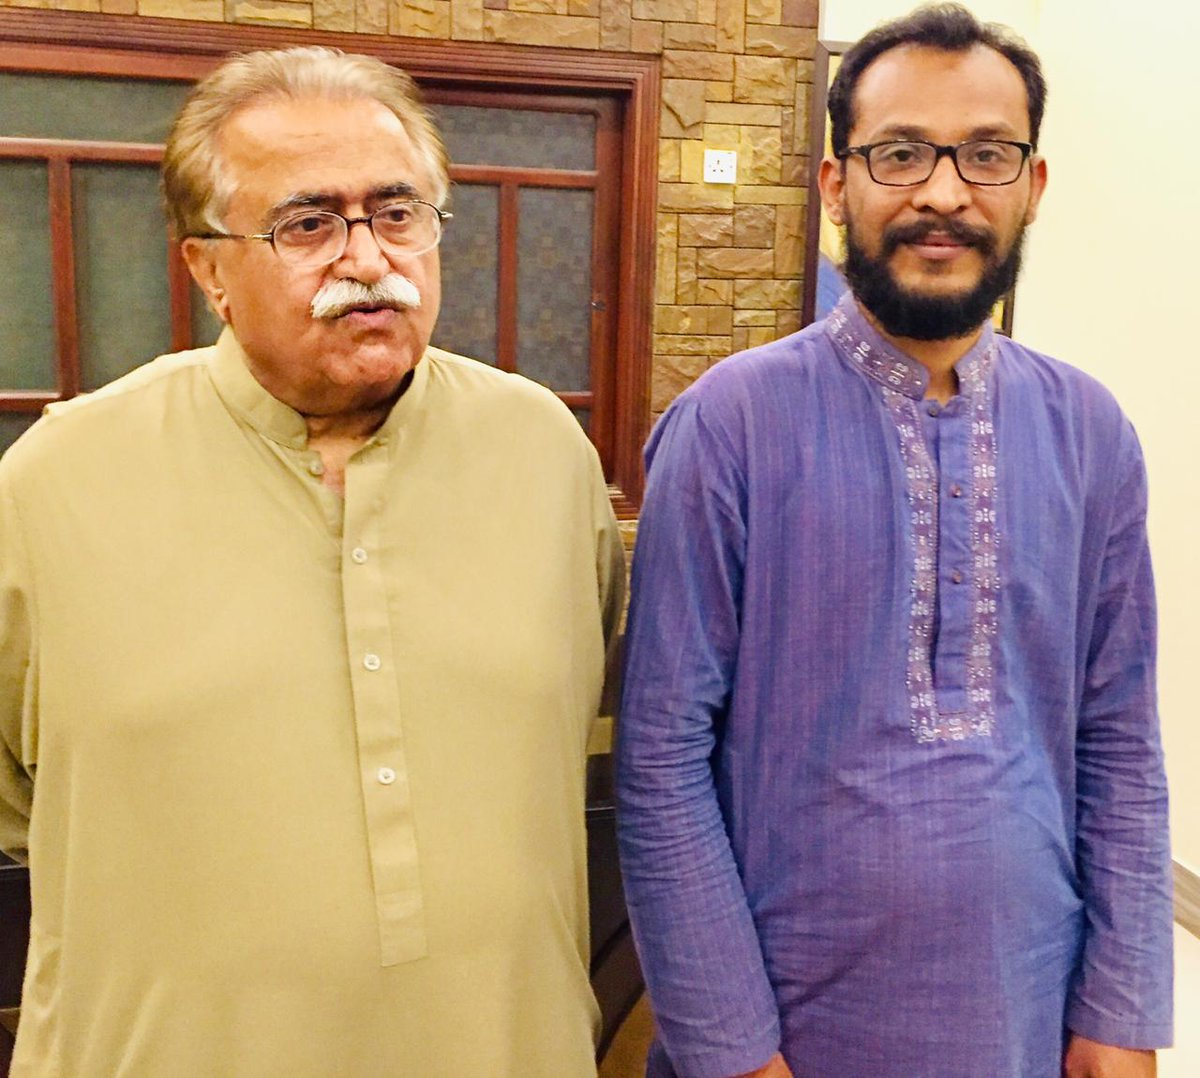 Today I had a very fruitful meeting with Senator @MBChandioPPP at his office, discuss about current political situation, Chandio sb is Very positive person  I believe Chandio sb is a massive asset in Pakistani politics and real Nazarati Jiyala of #PPP. @BBhuttoZardari